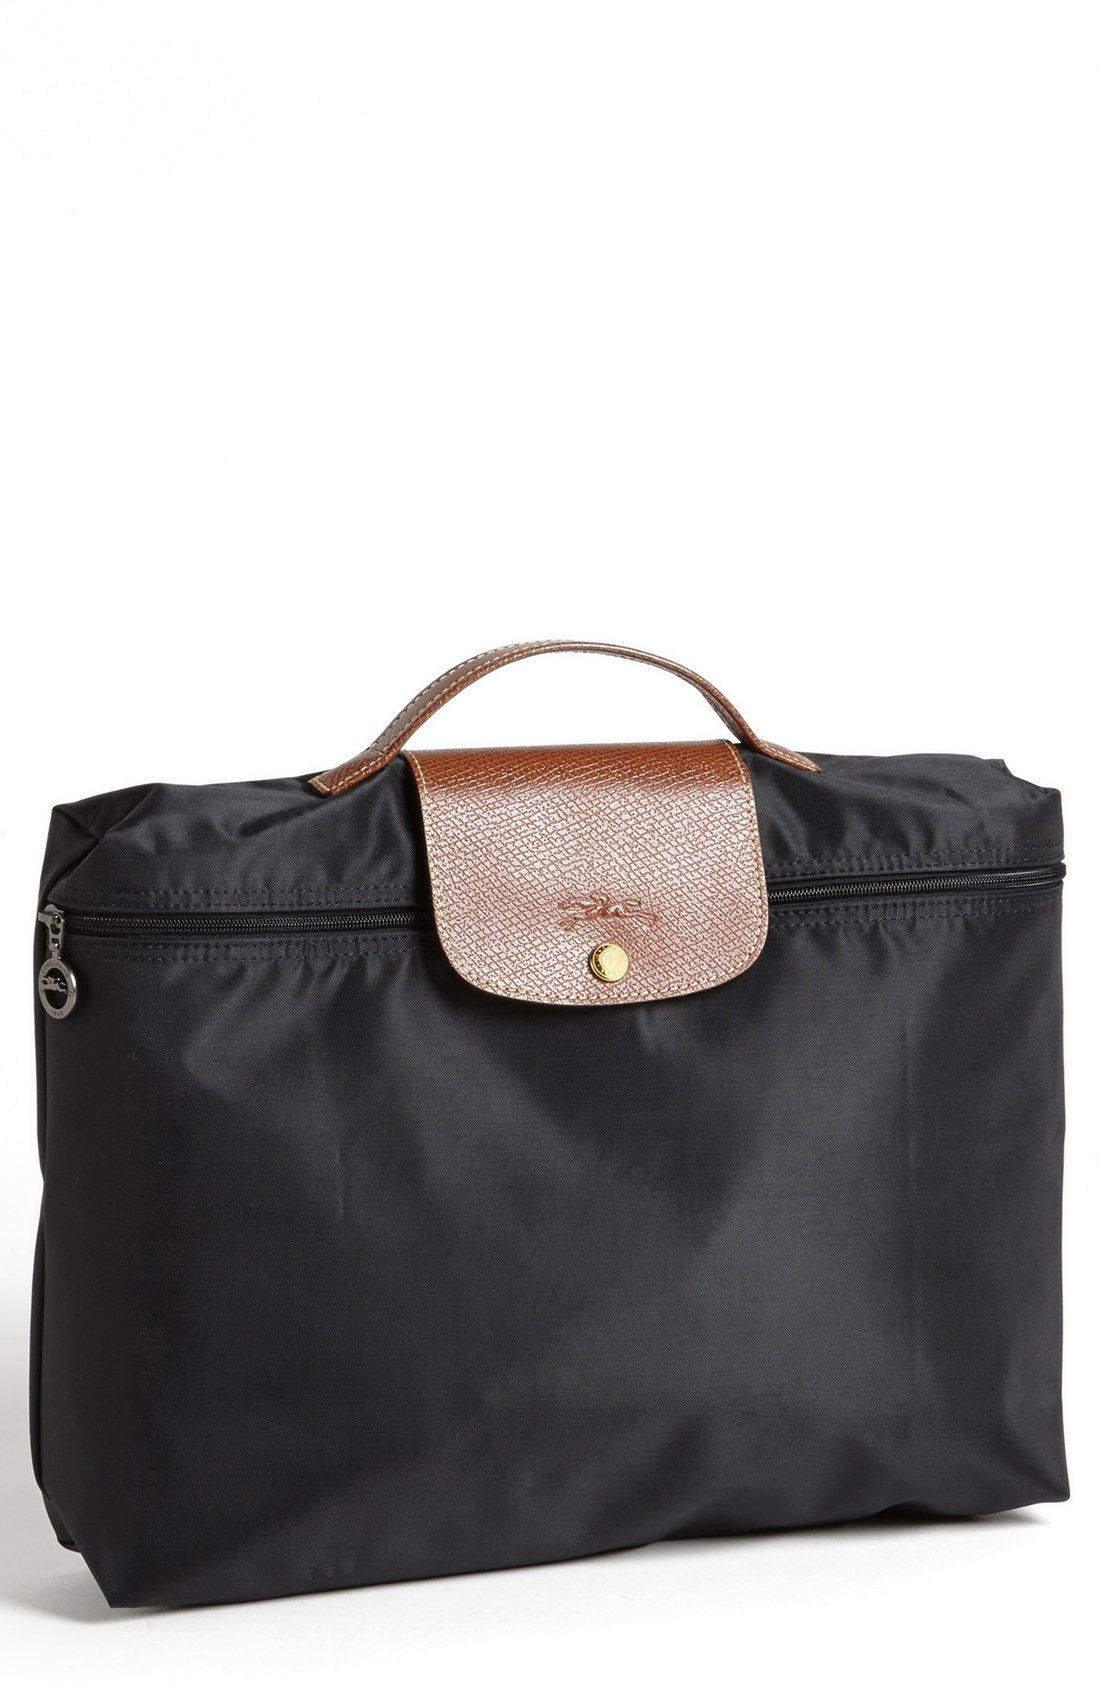 Longchamp \u0027Le Pliage\u0027 Briefcase